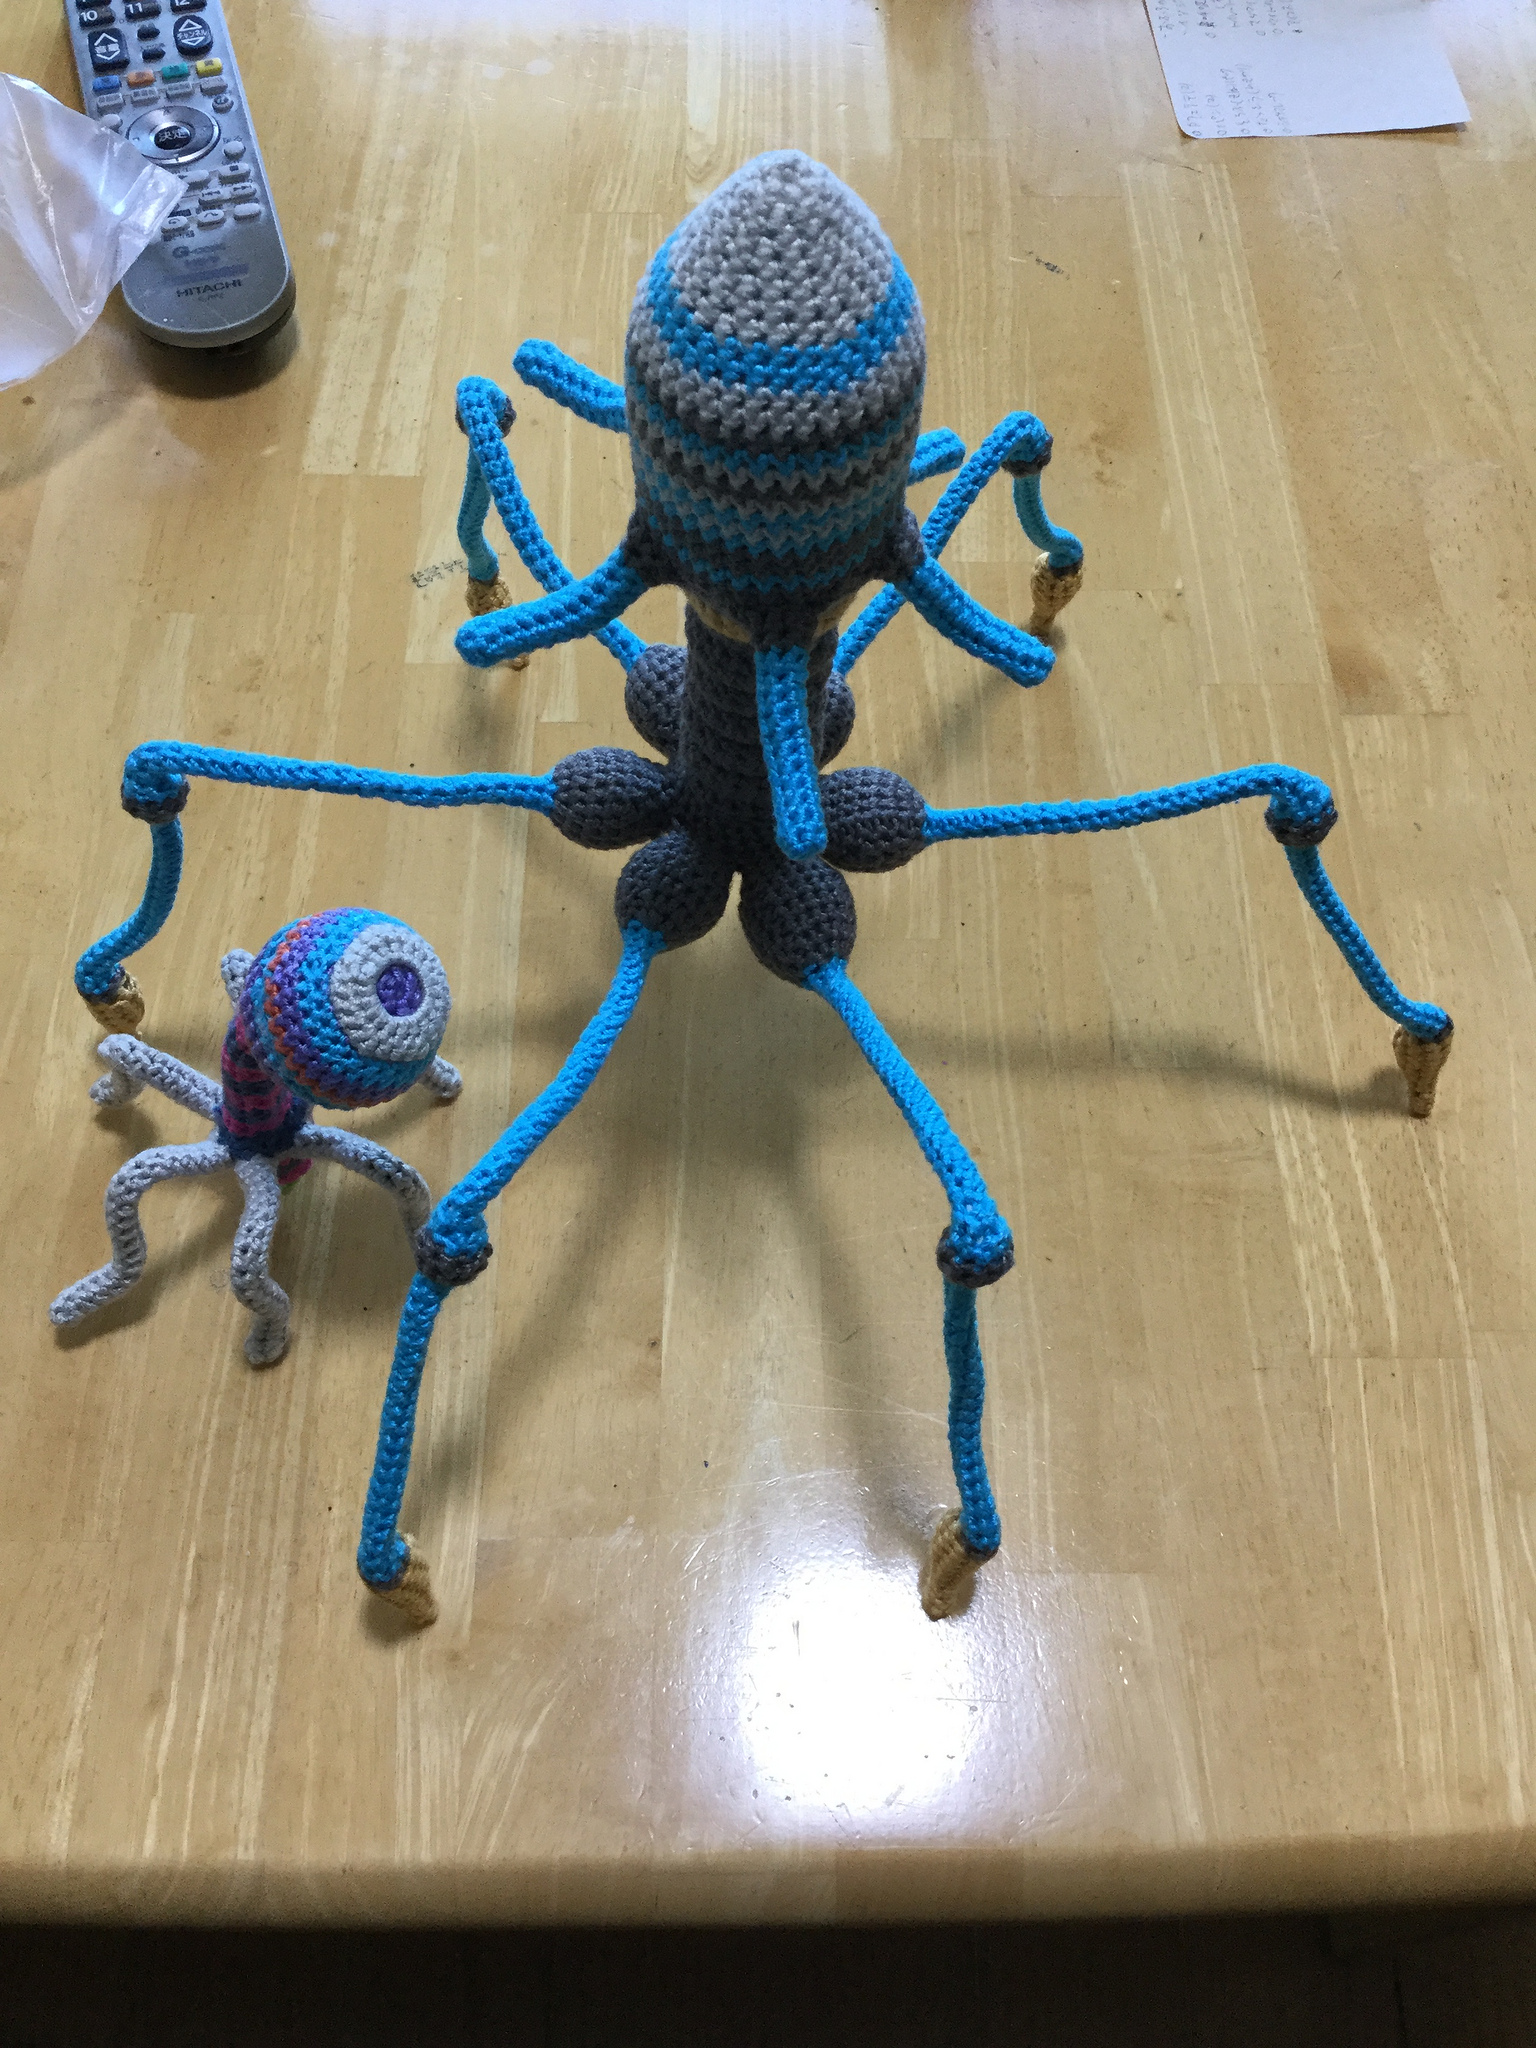 He Crocheted a Phage Soft Sculpture